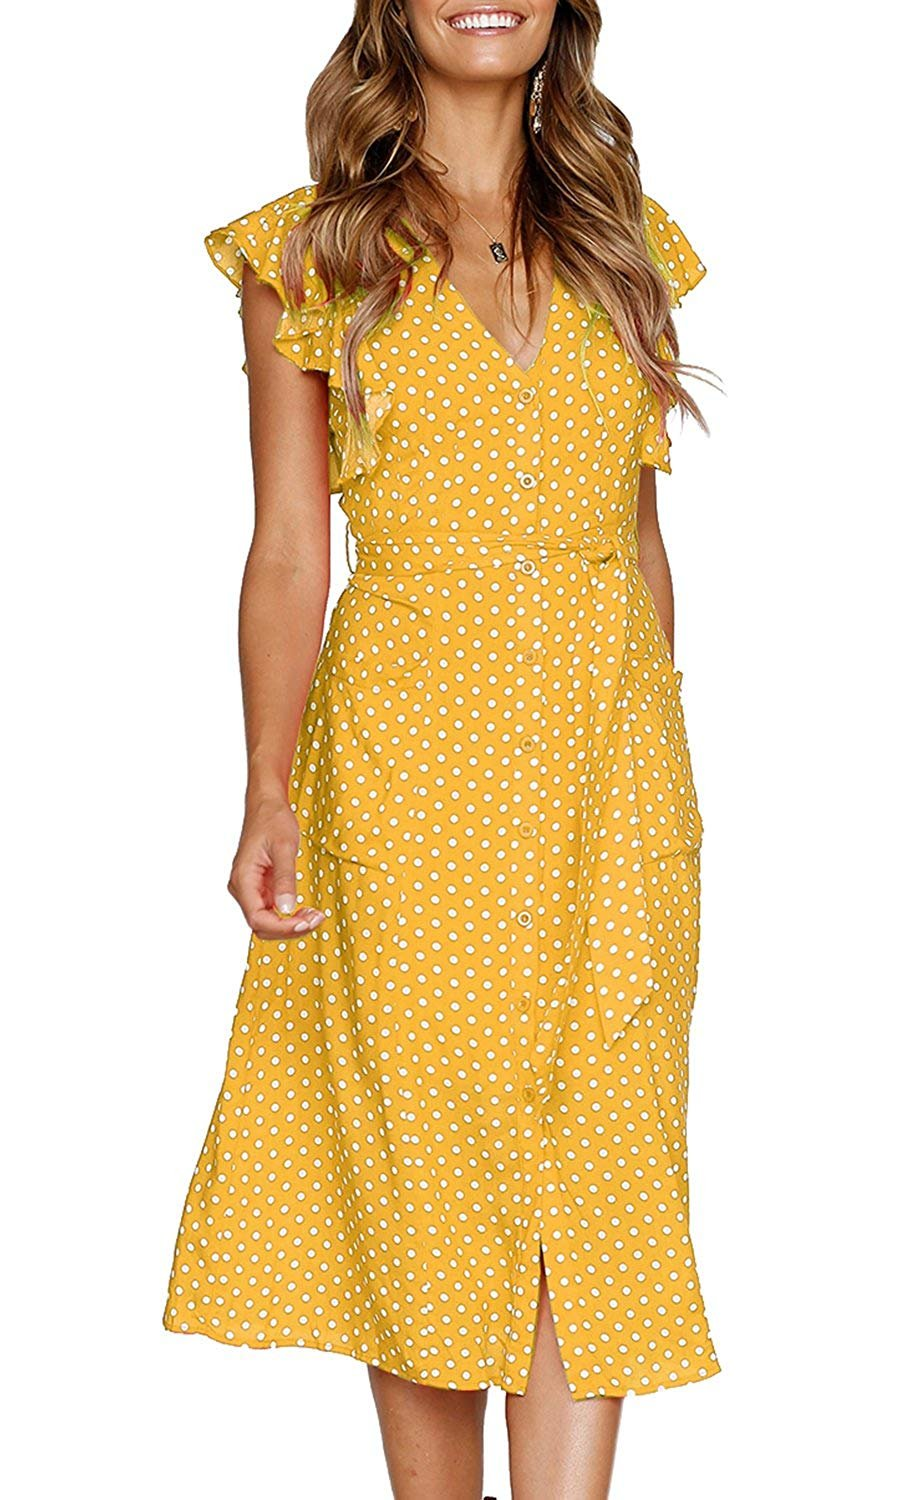 OURS Women Summer Polka Dots V Neck Sleeveless Button Down Midi Dresses with Pockets